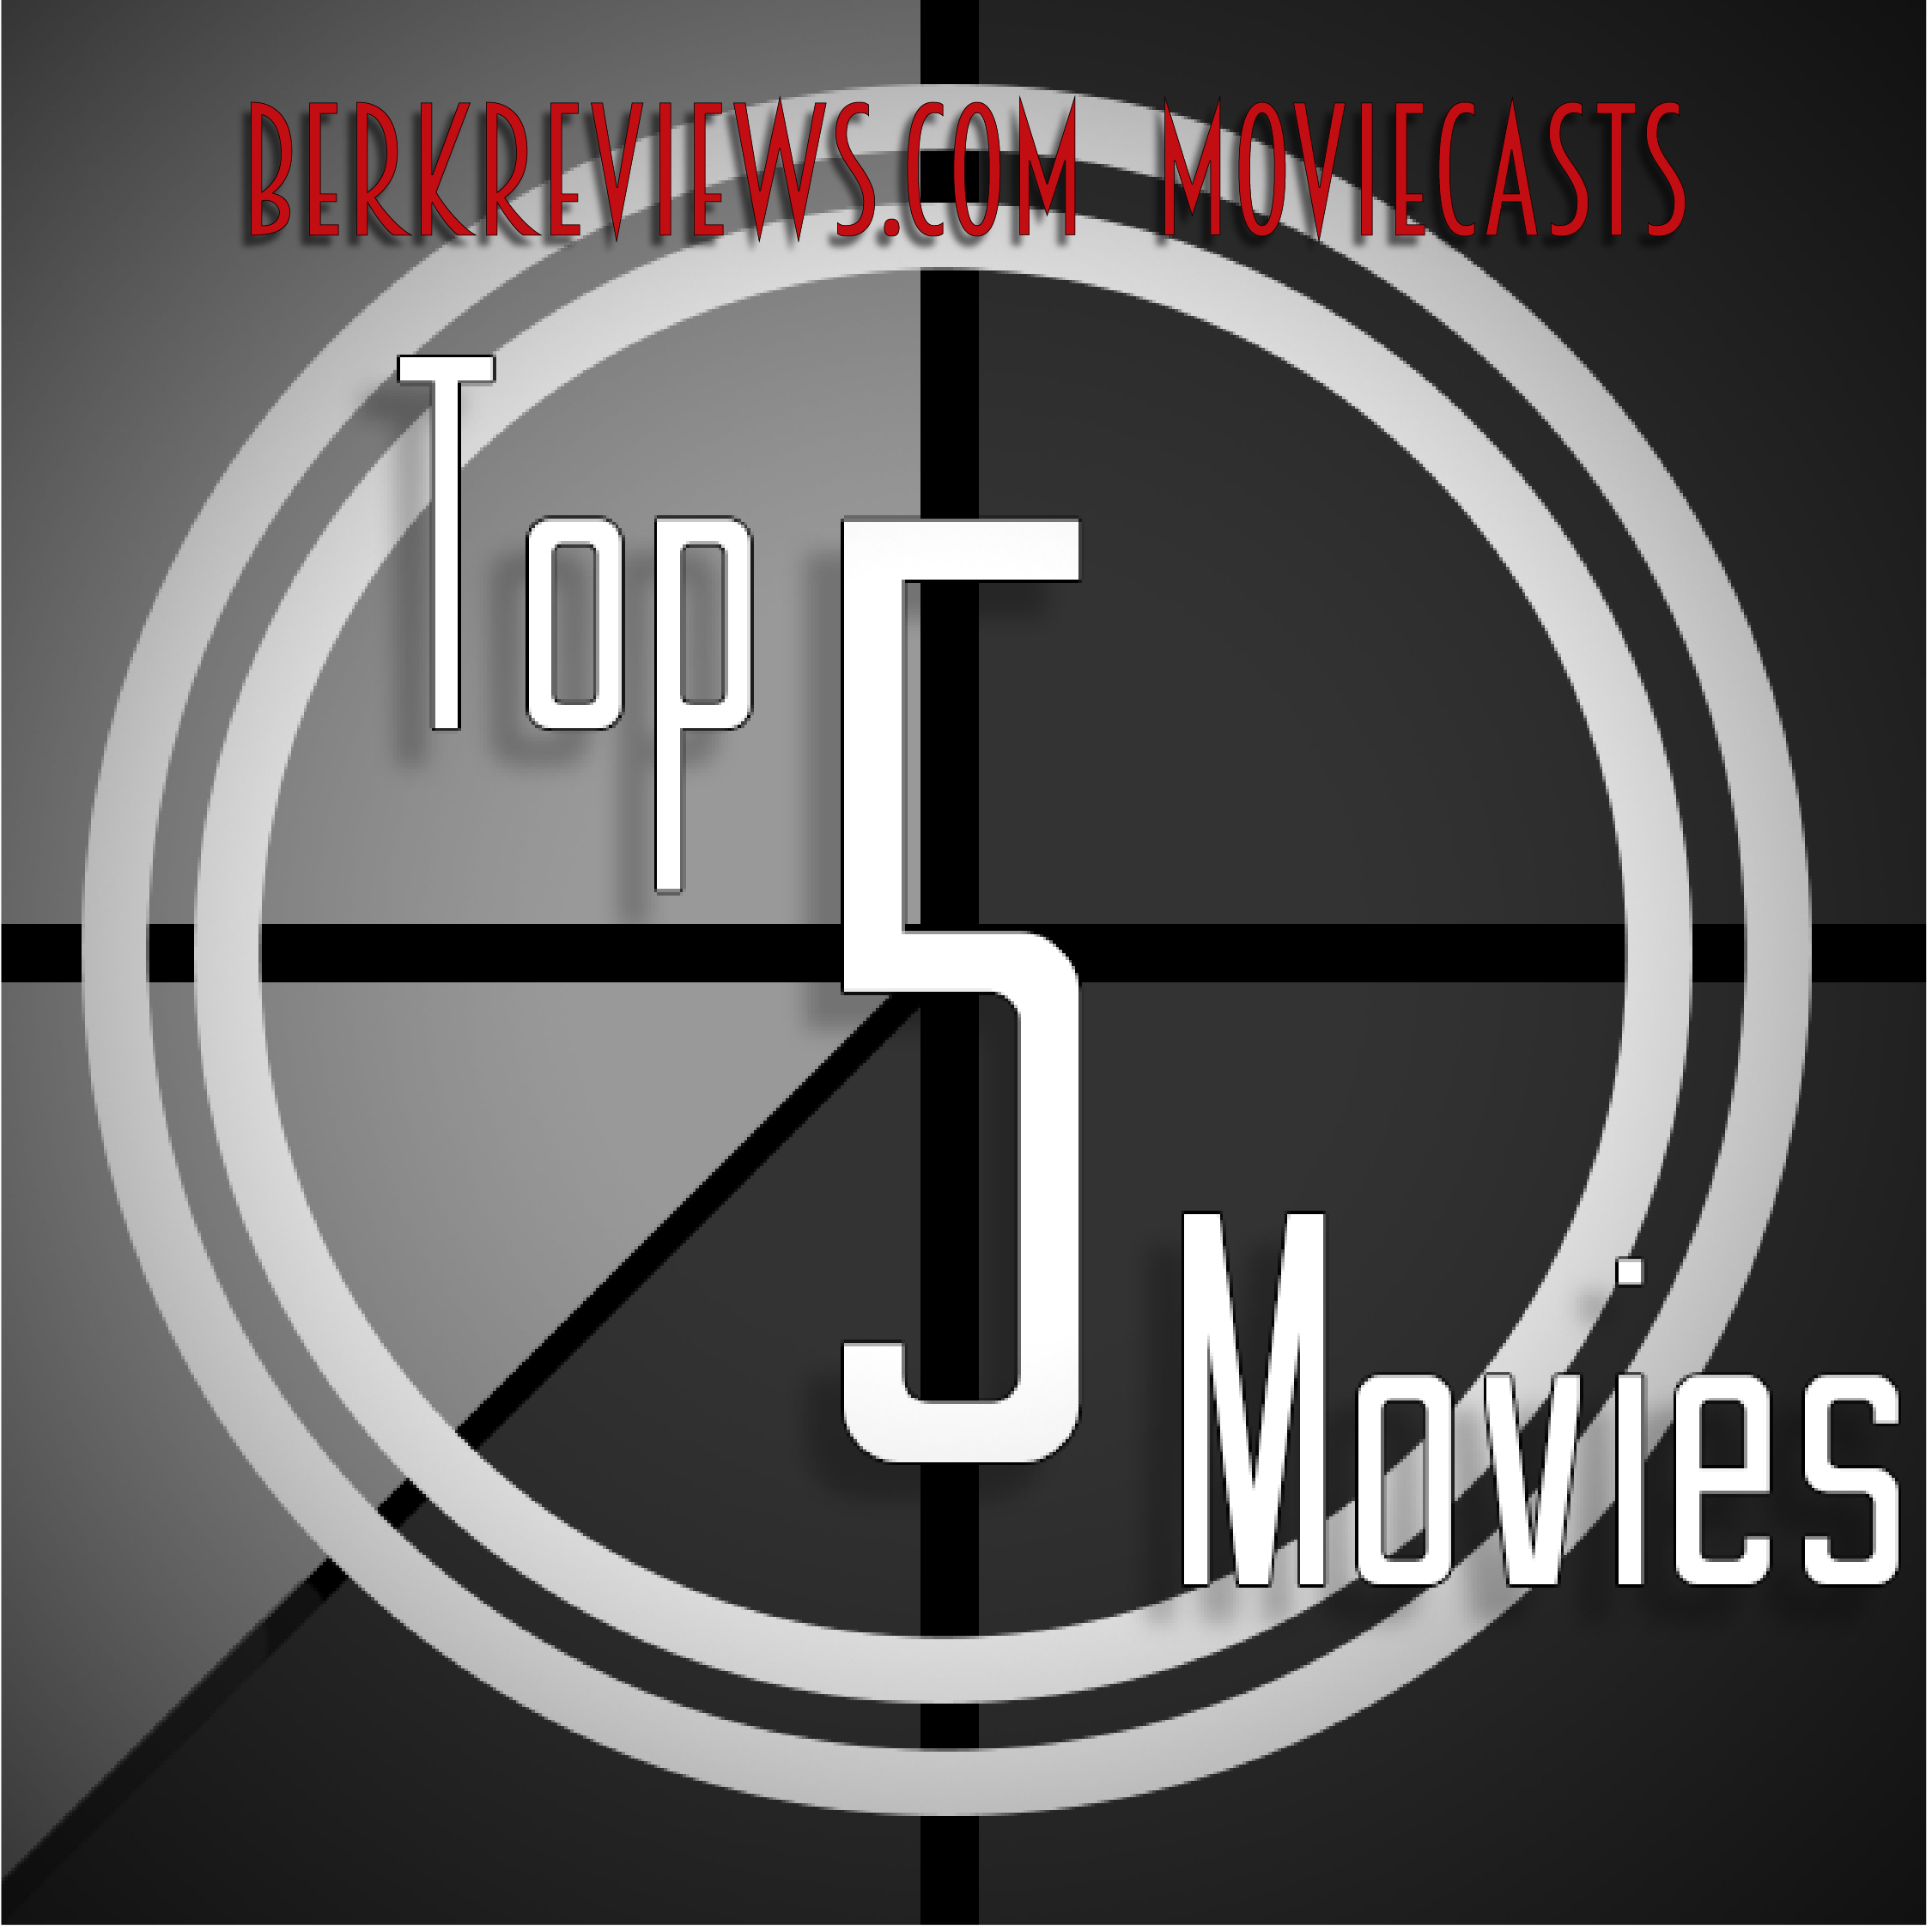 Top Five Movies Episode 046 From The 80s By Berkreviewscom Short Circuit Reboot Tim Hill Might Give Johnny5 New Life 082 Regrets Of 2017